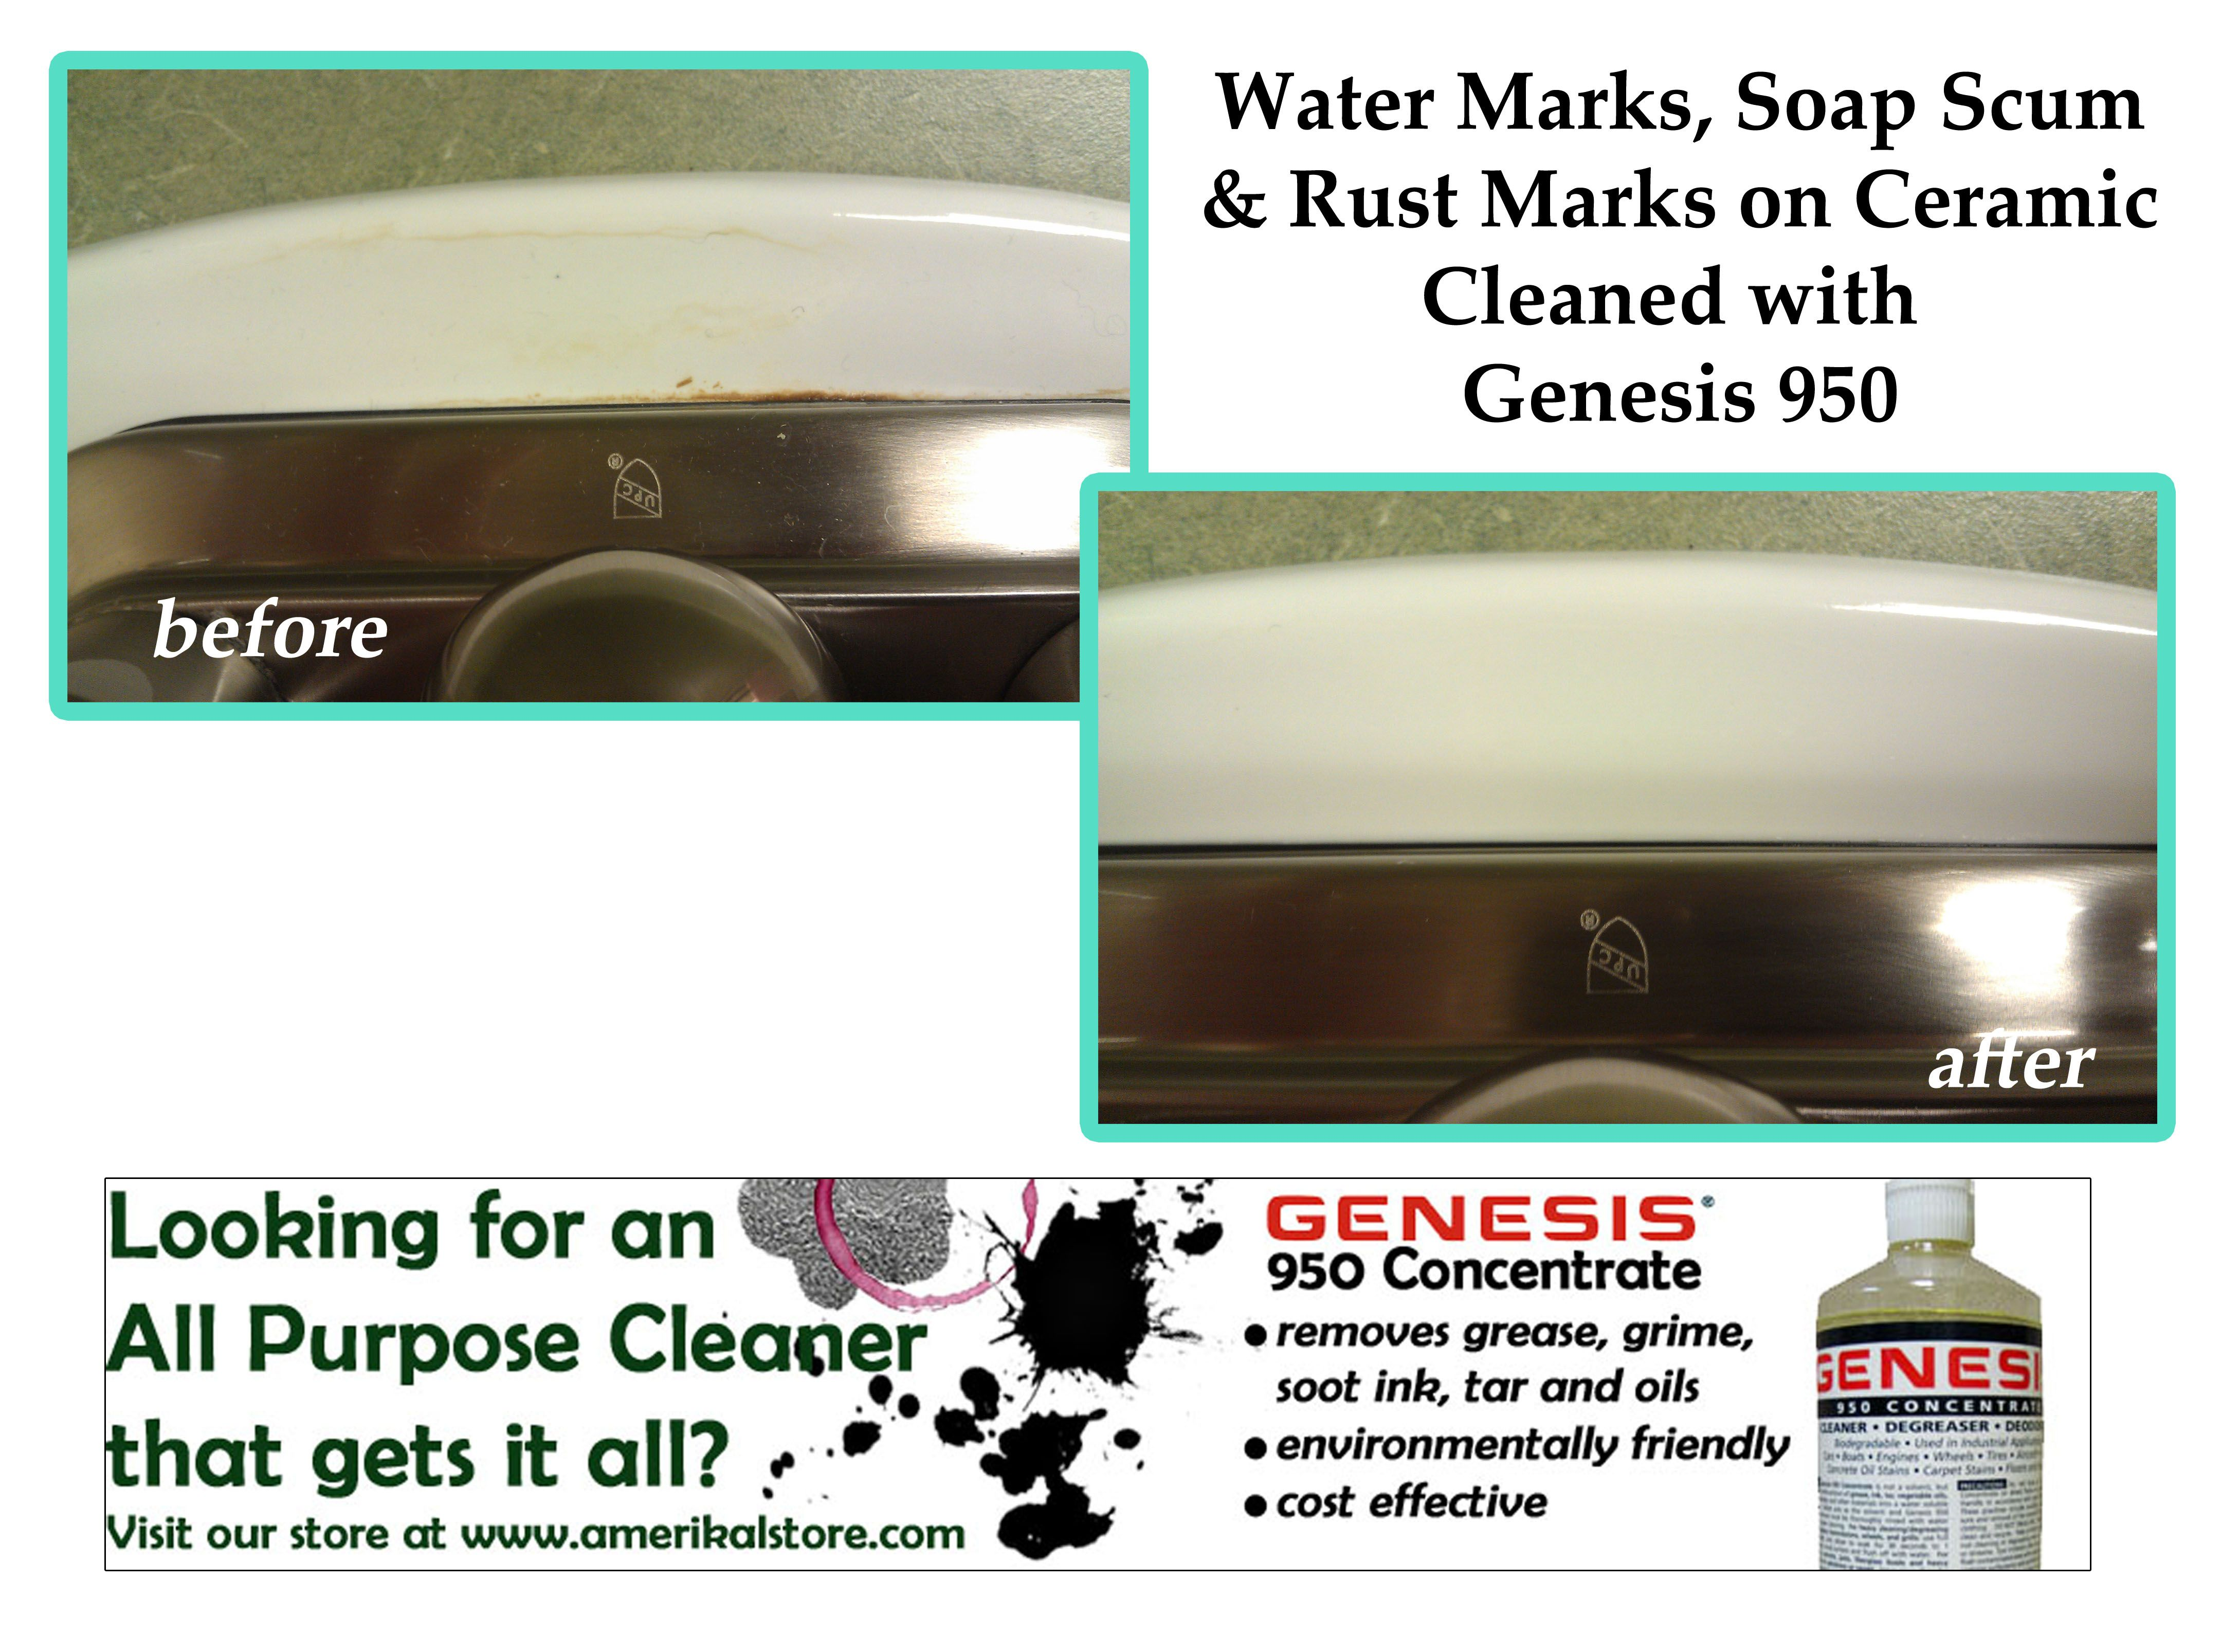 Before & After - Genesis 950 was used on a ceramic sink and stainless steel fixture to remove dirt, water marks, rust and soap scum.